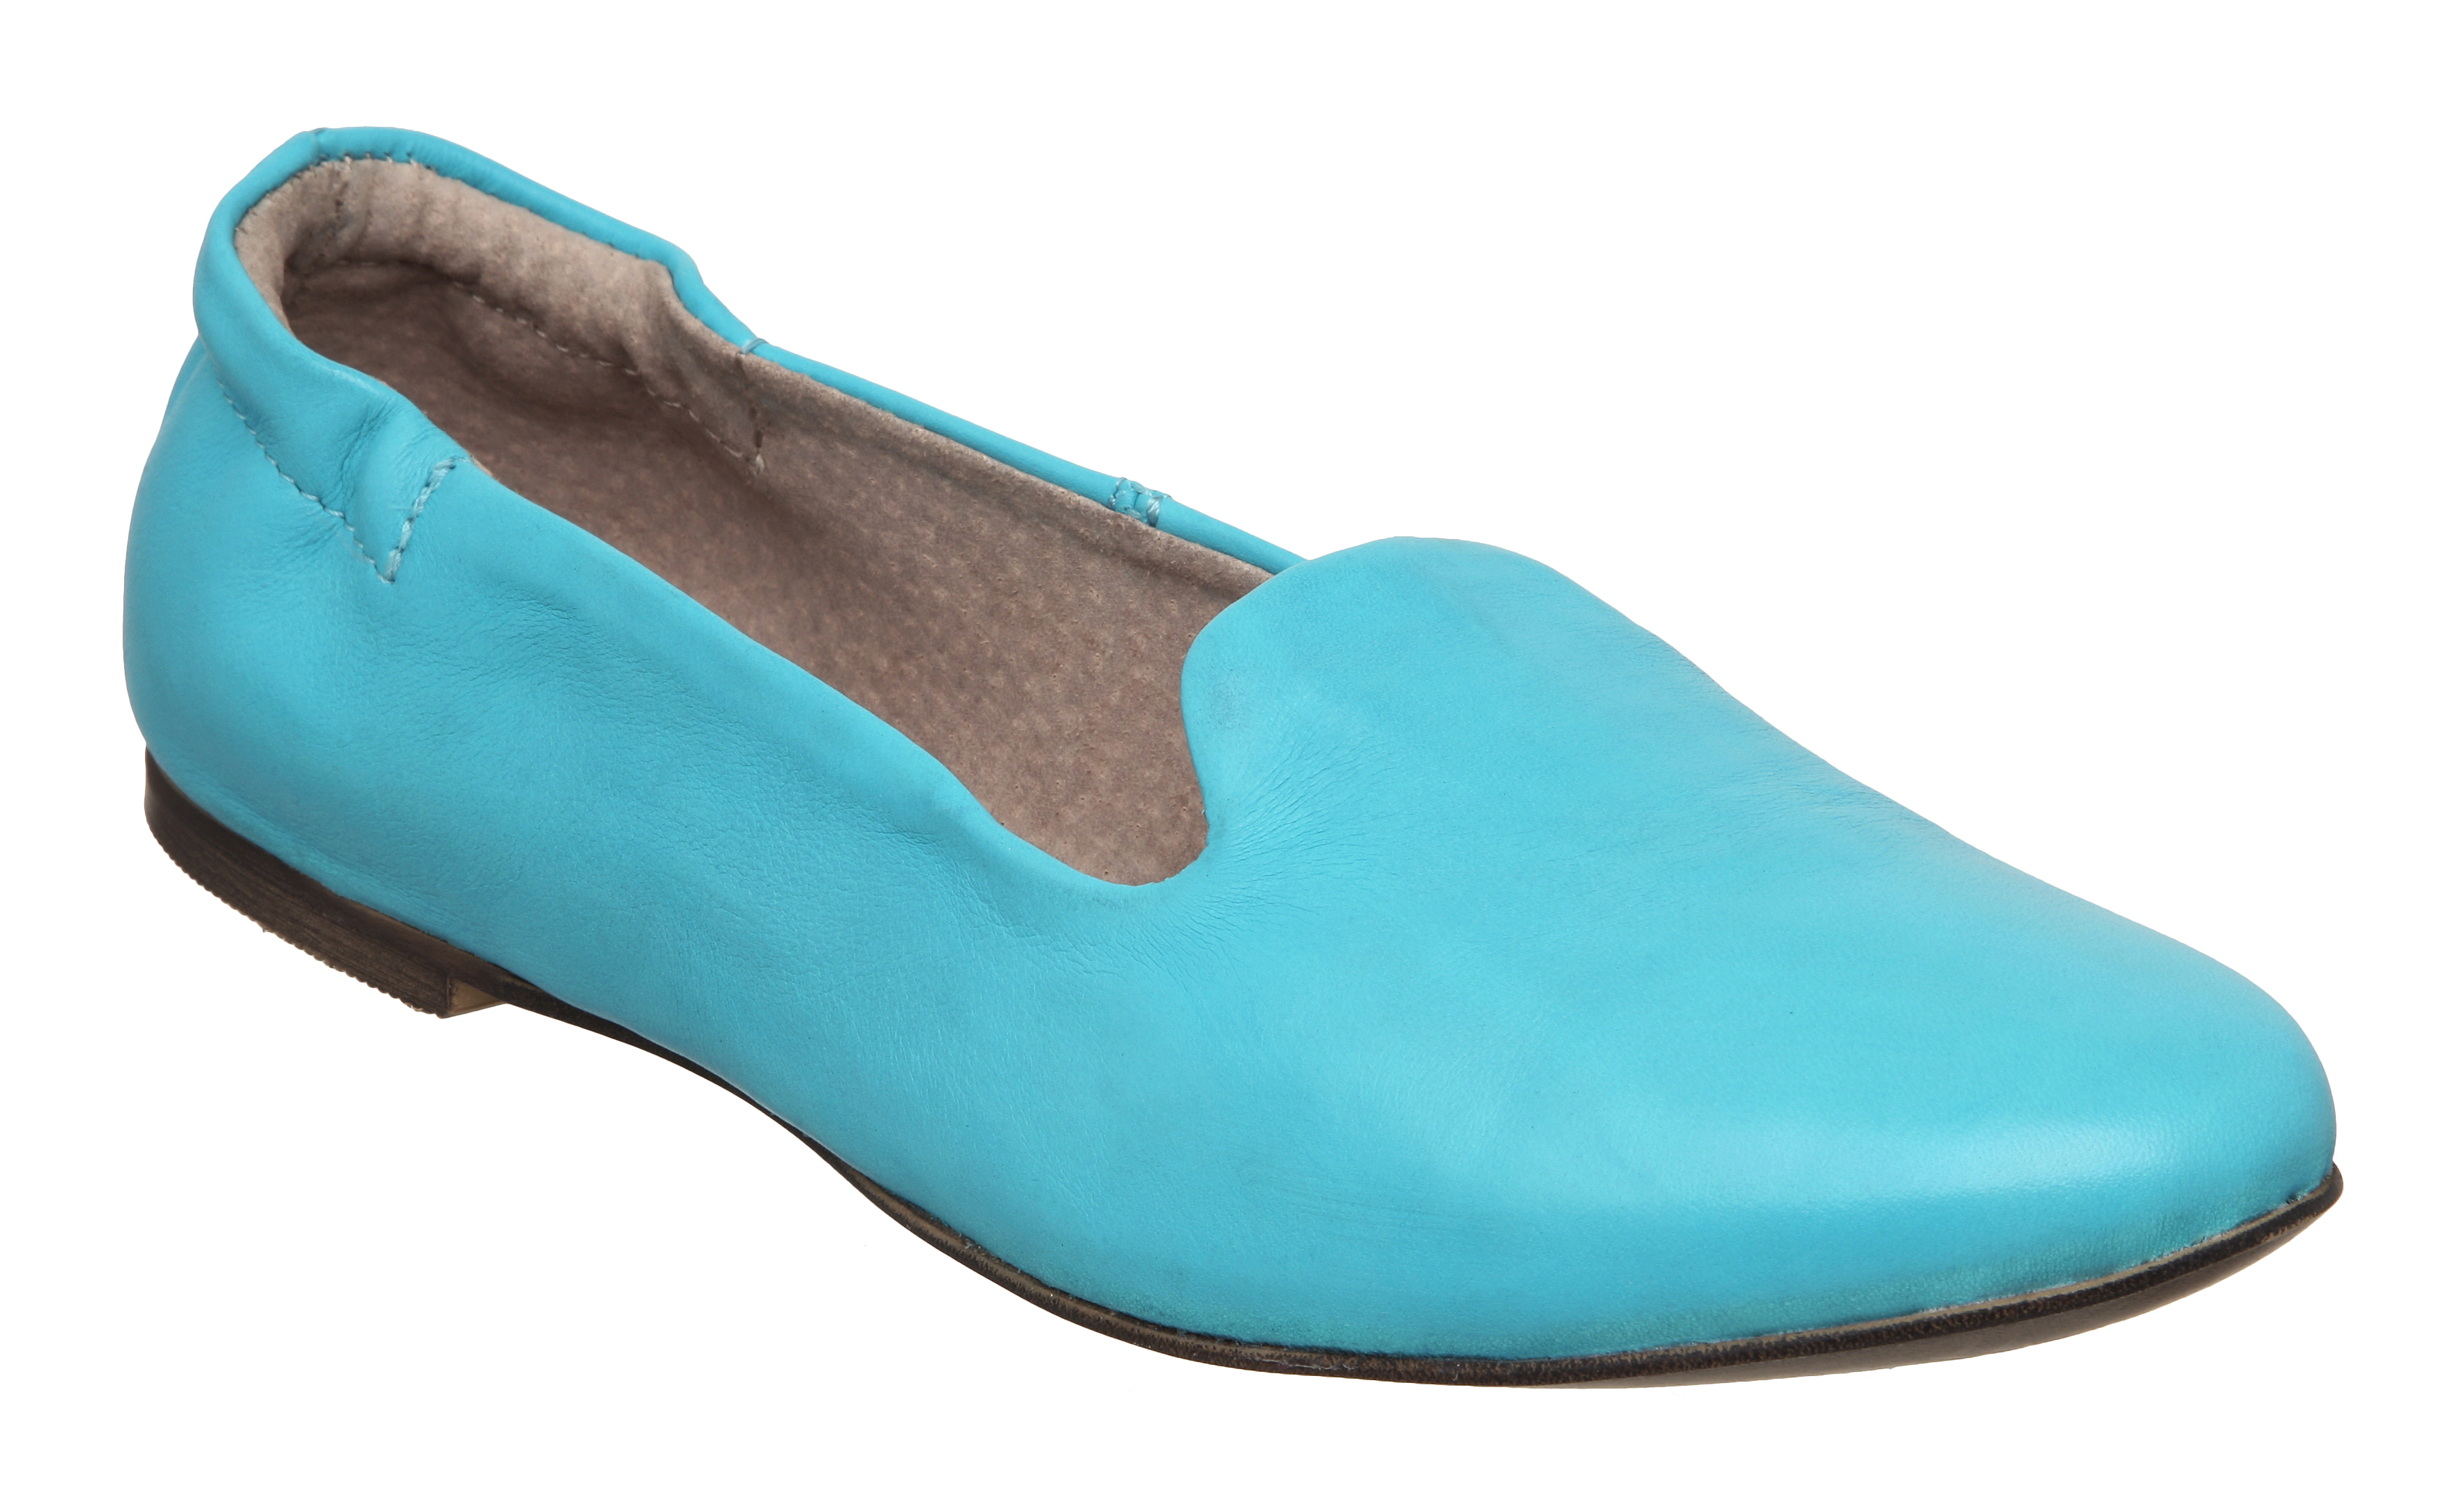 Free shipping BOTH ways on turquoise color women shoes, from our vast selection of styles. Fast delivery, and 24/7/ real-person service with a smile. Click or call